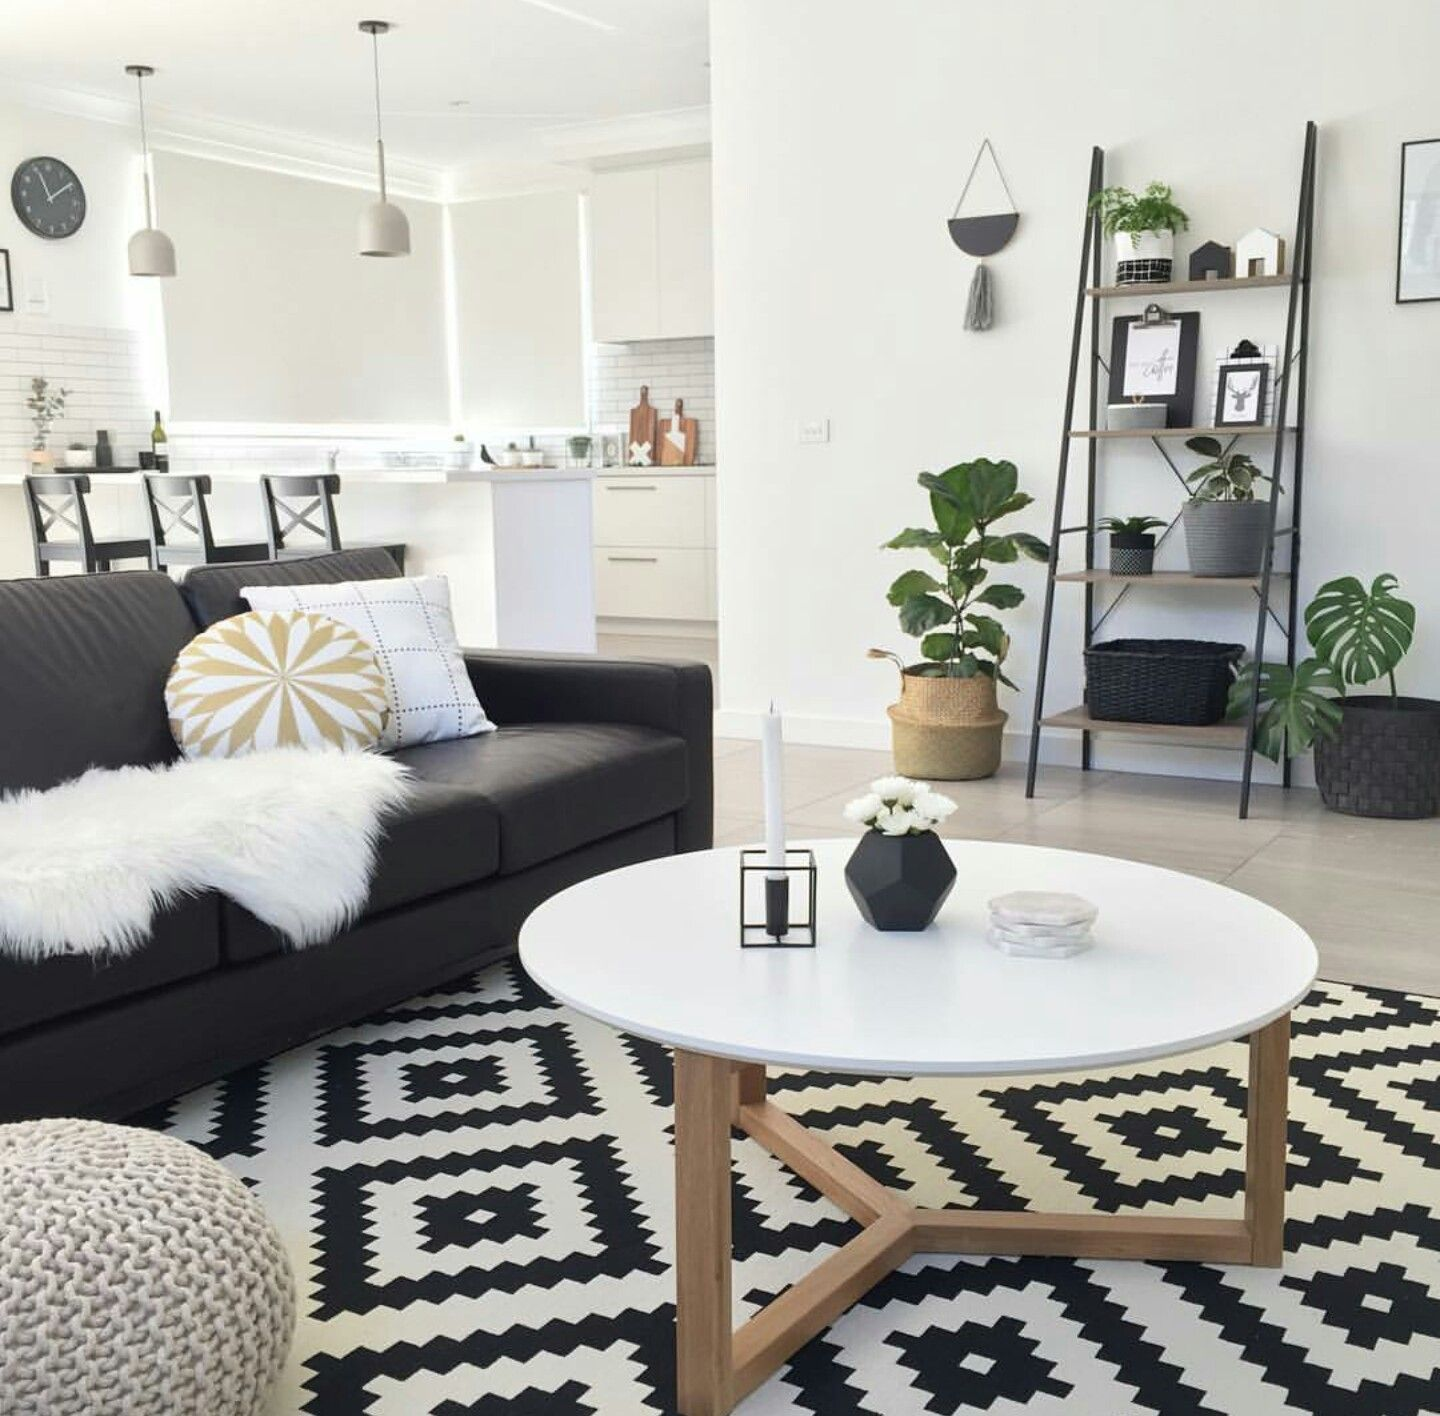 kmart living room decor in 6 | Black, white living room, Living ...